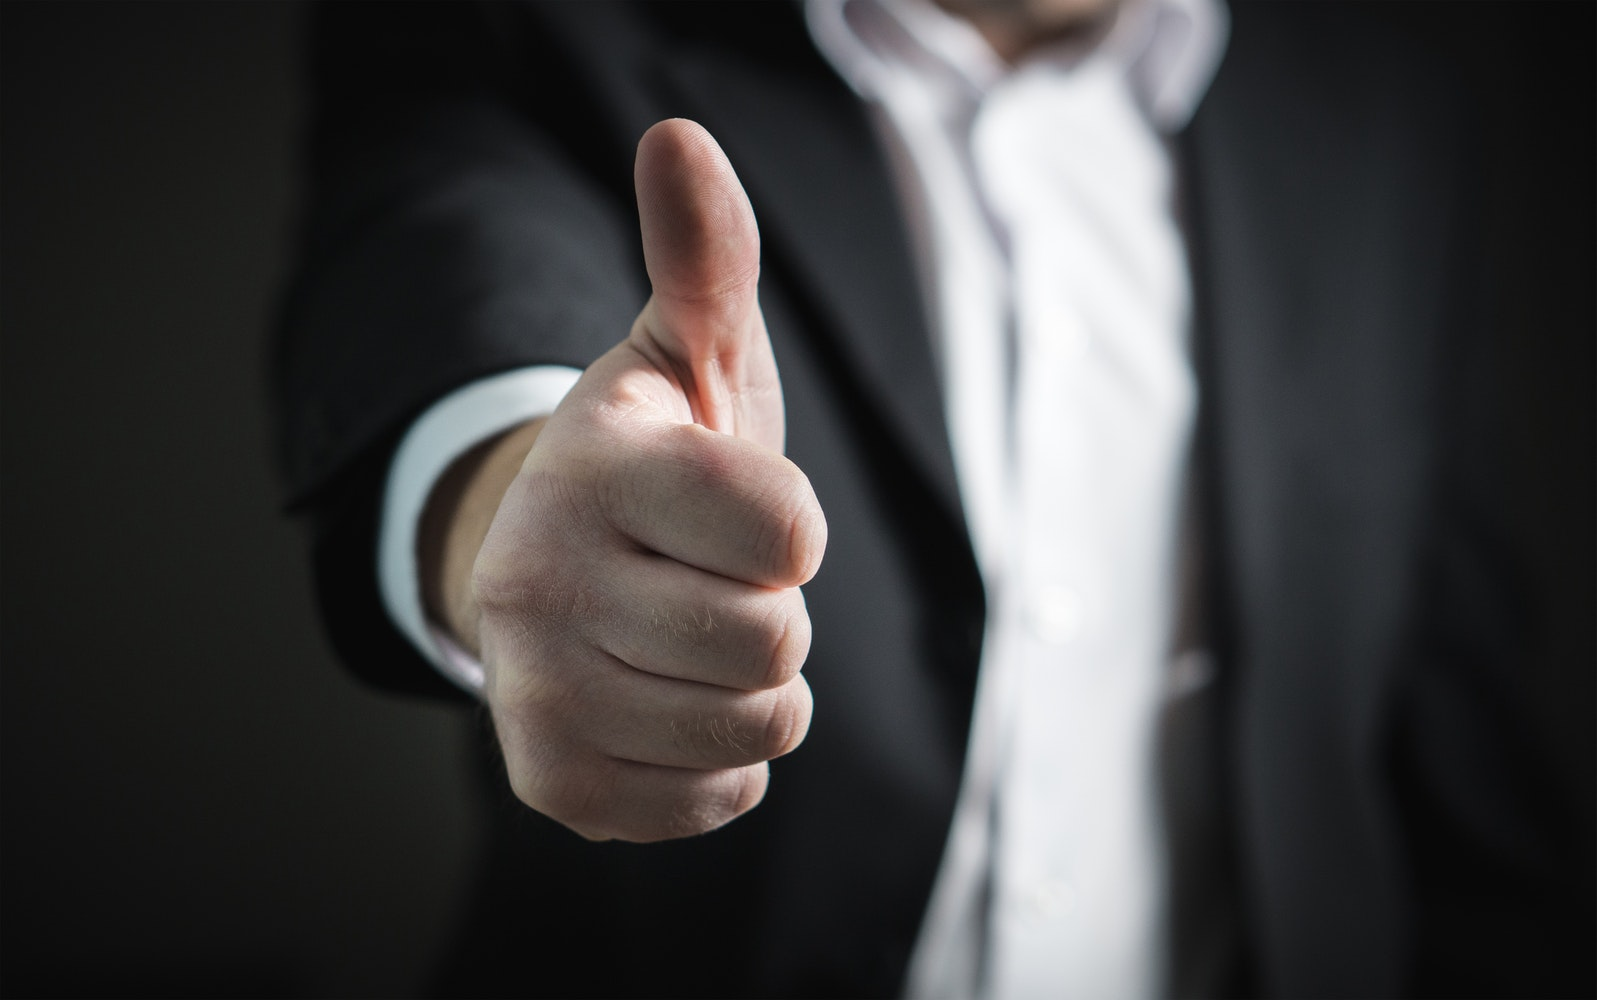 free stock photos of thumbs up pexels